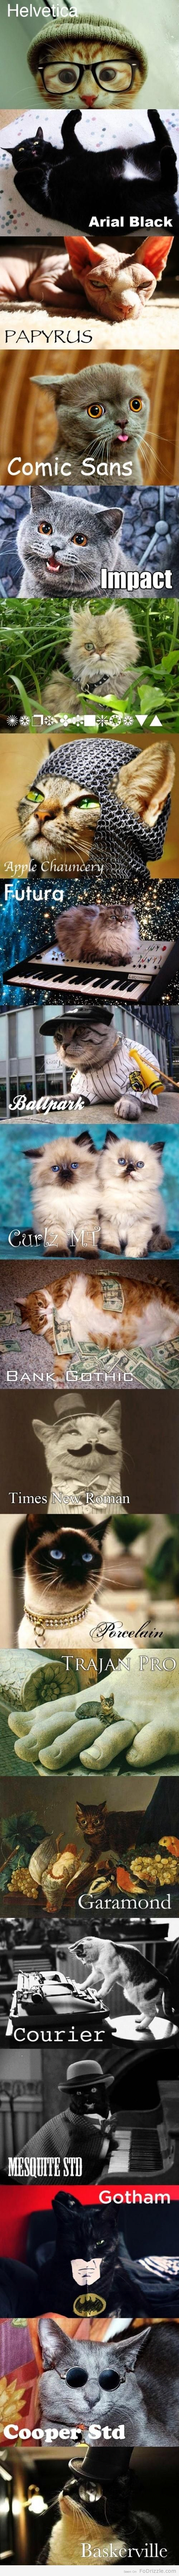 30 best Kittehs! images on Pinterest   Funny cats, Funny kitties and ...